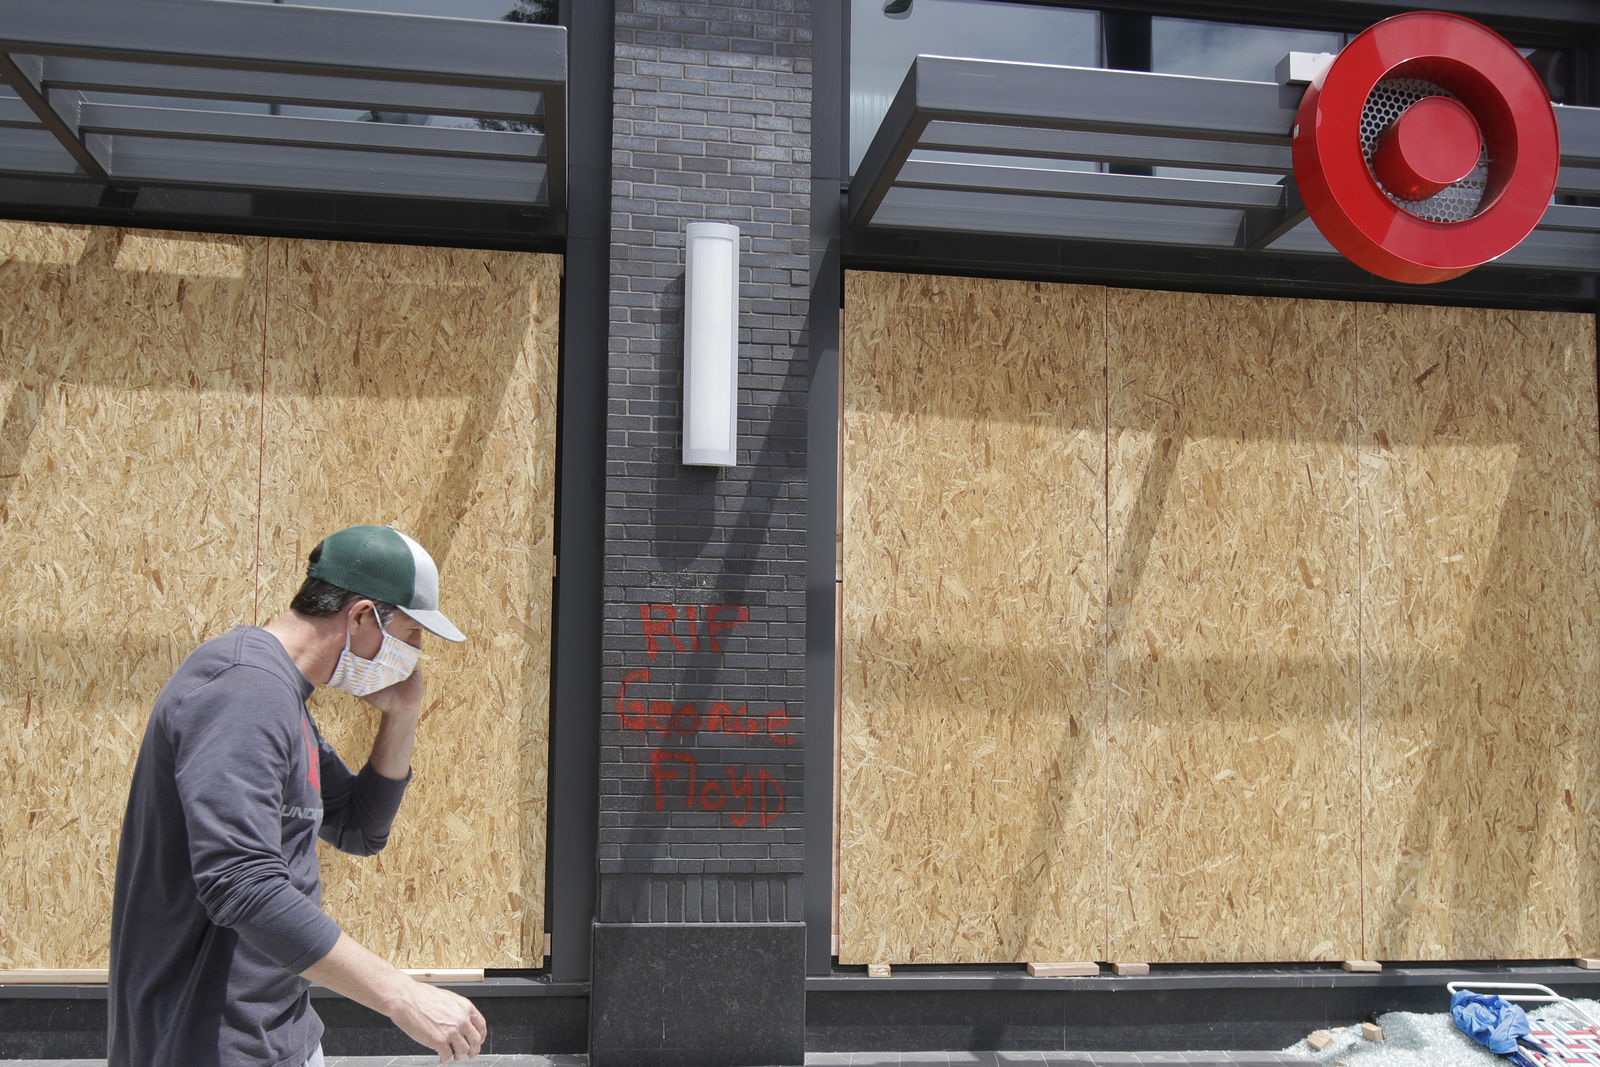 A worker walks past boarded up windows at a Target store in Oakland, Calif., Saturday, May 30, 2020, that was damaged during protests over the death of George Floyd. (AP Photo/Jeff Chiu)